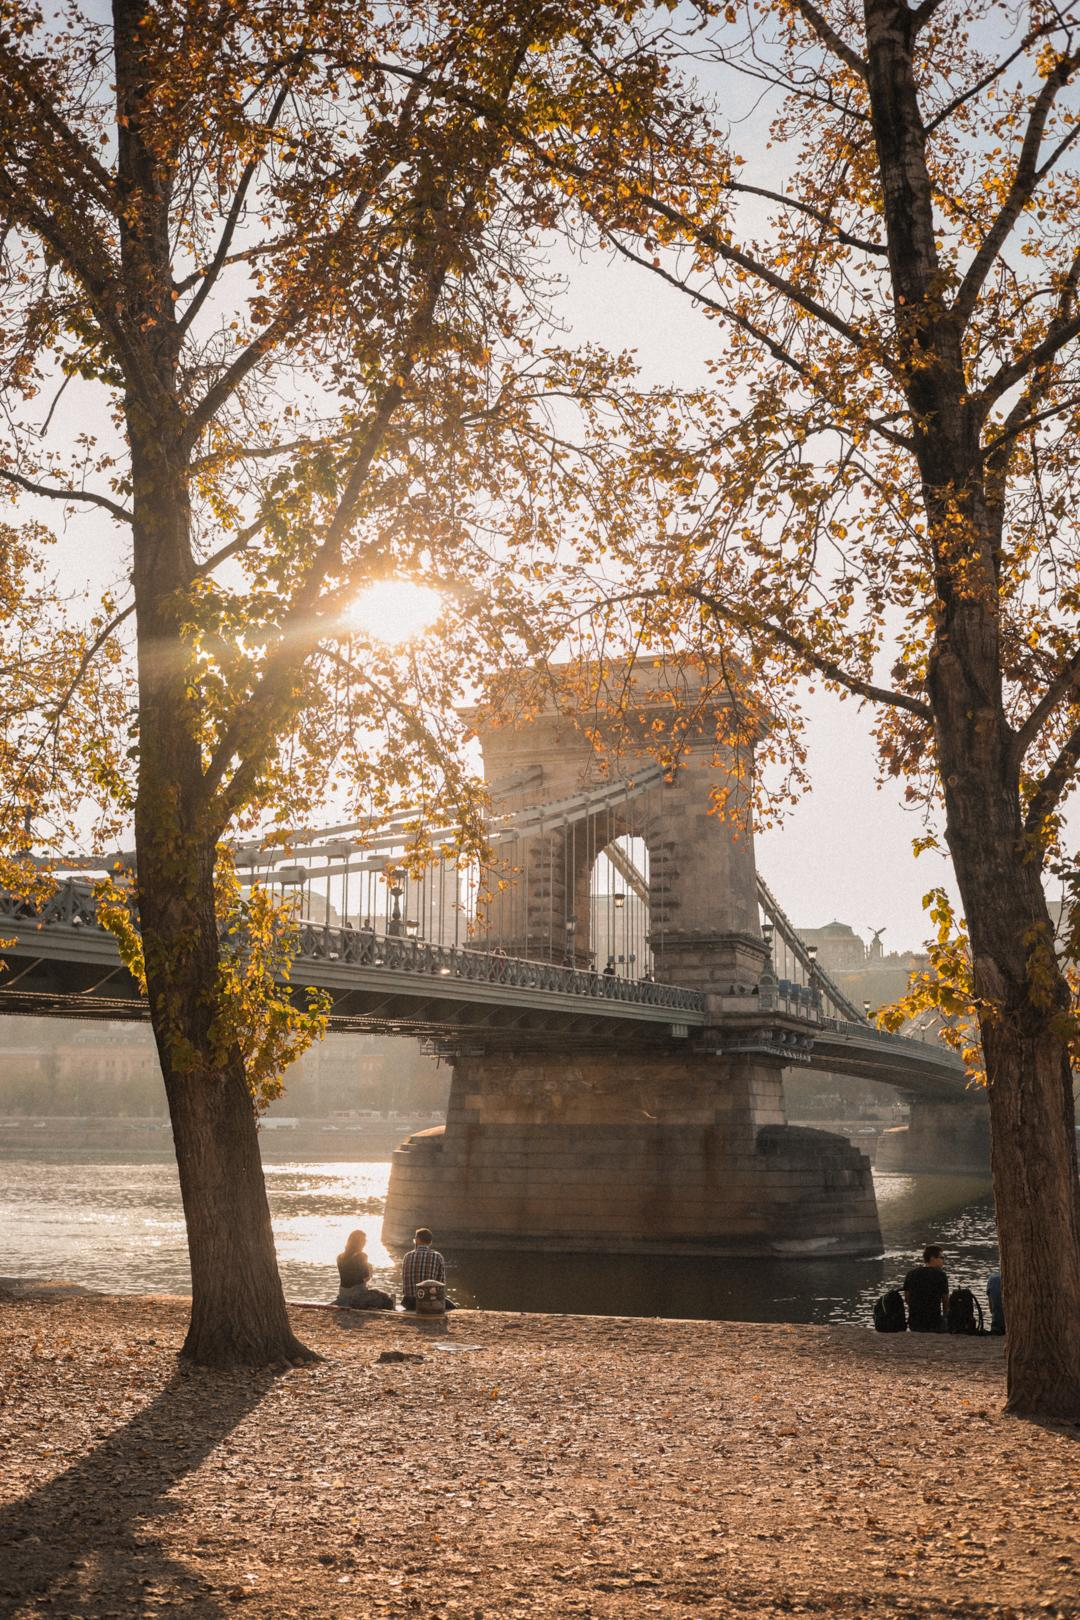 comment organiser son voyage a budapest